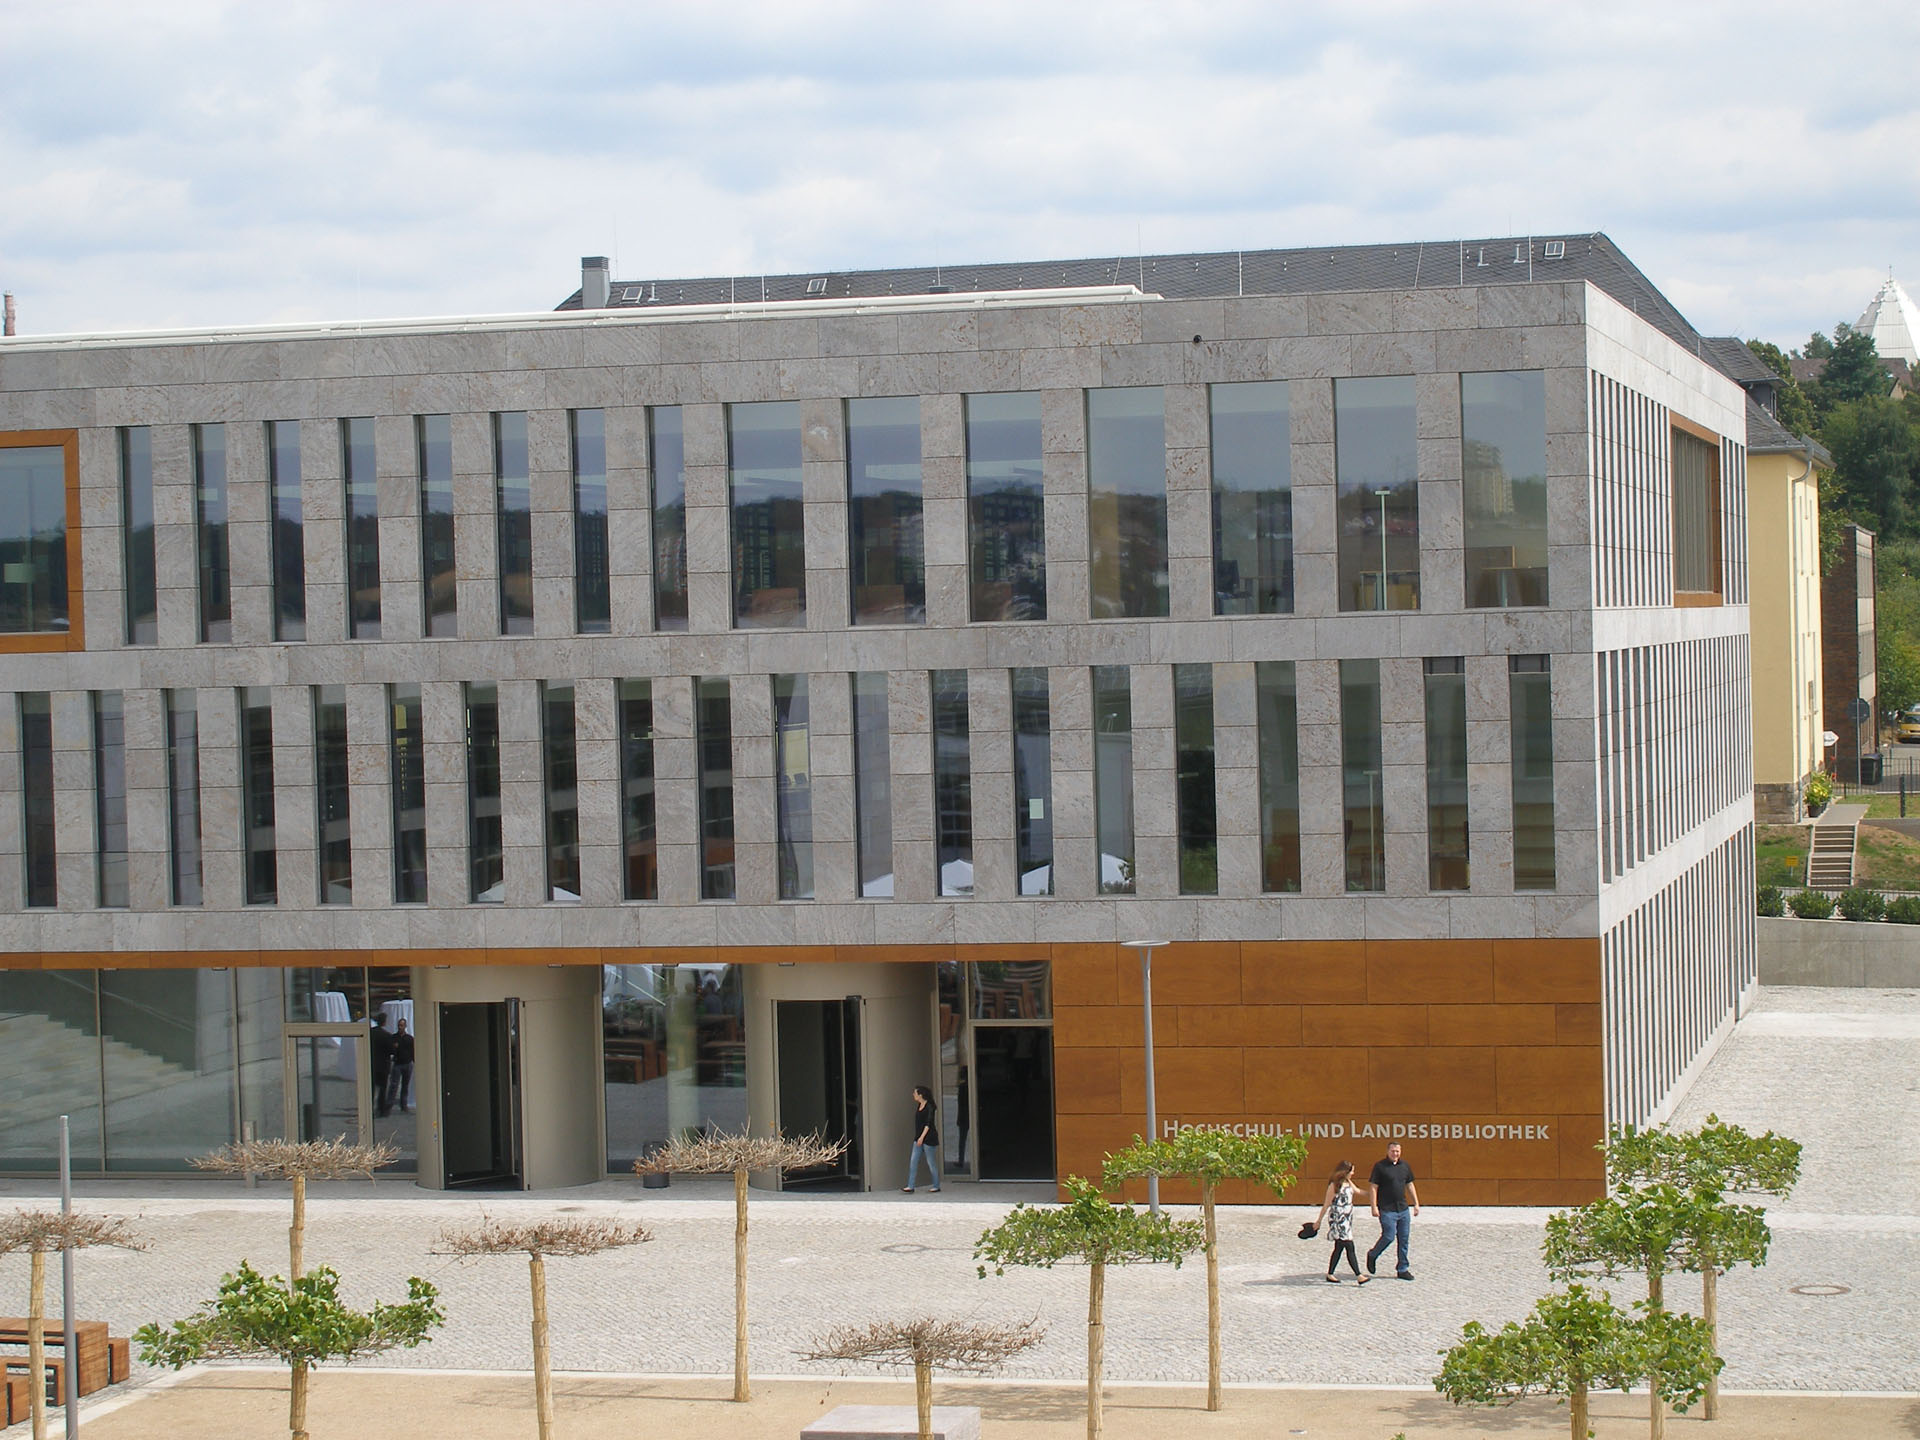 Hochschule Fulda University Applied Sciences library building architecture exterior view